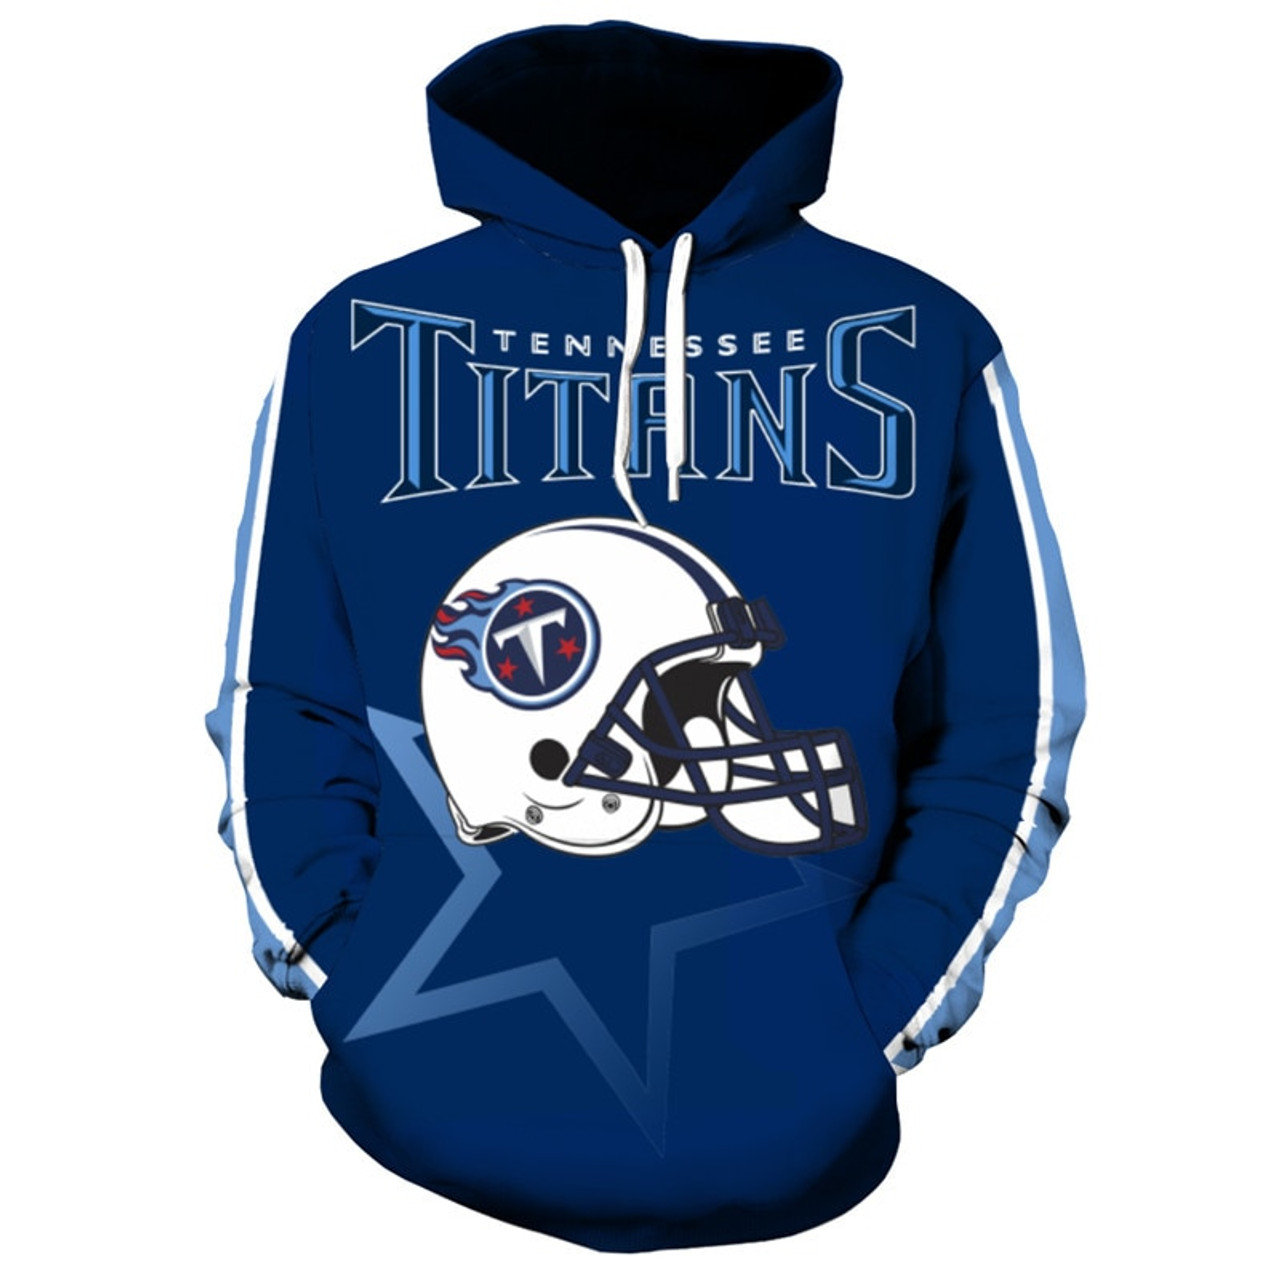 092864f4 **(OFFICIALLY-LICENSED-N.F.L.TENNESSEE-TITANS-TRENDY-PULLOVER-TEAM-HOODIES/NICE-CUSTOM-3D-EFFECT-GRAPHIC-PRINTED-DOUBLE-SIDED-ALL-OVER-OFFICIAL-TITANS...